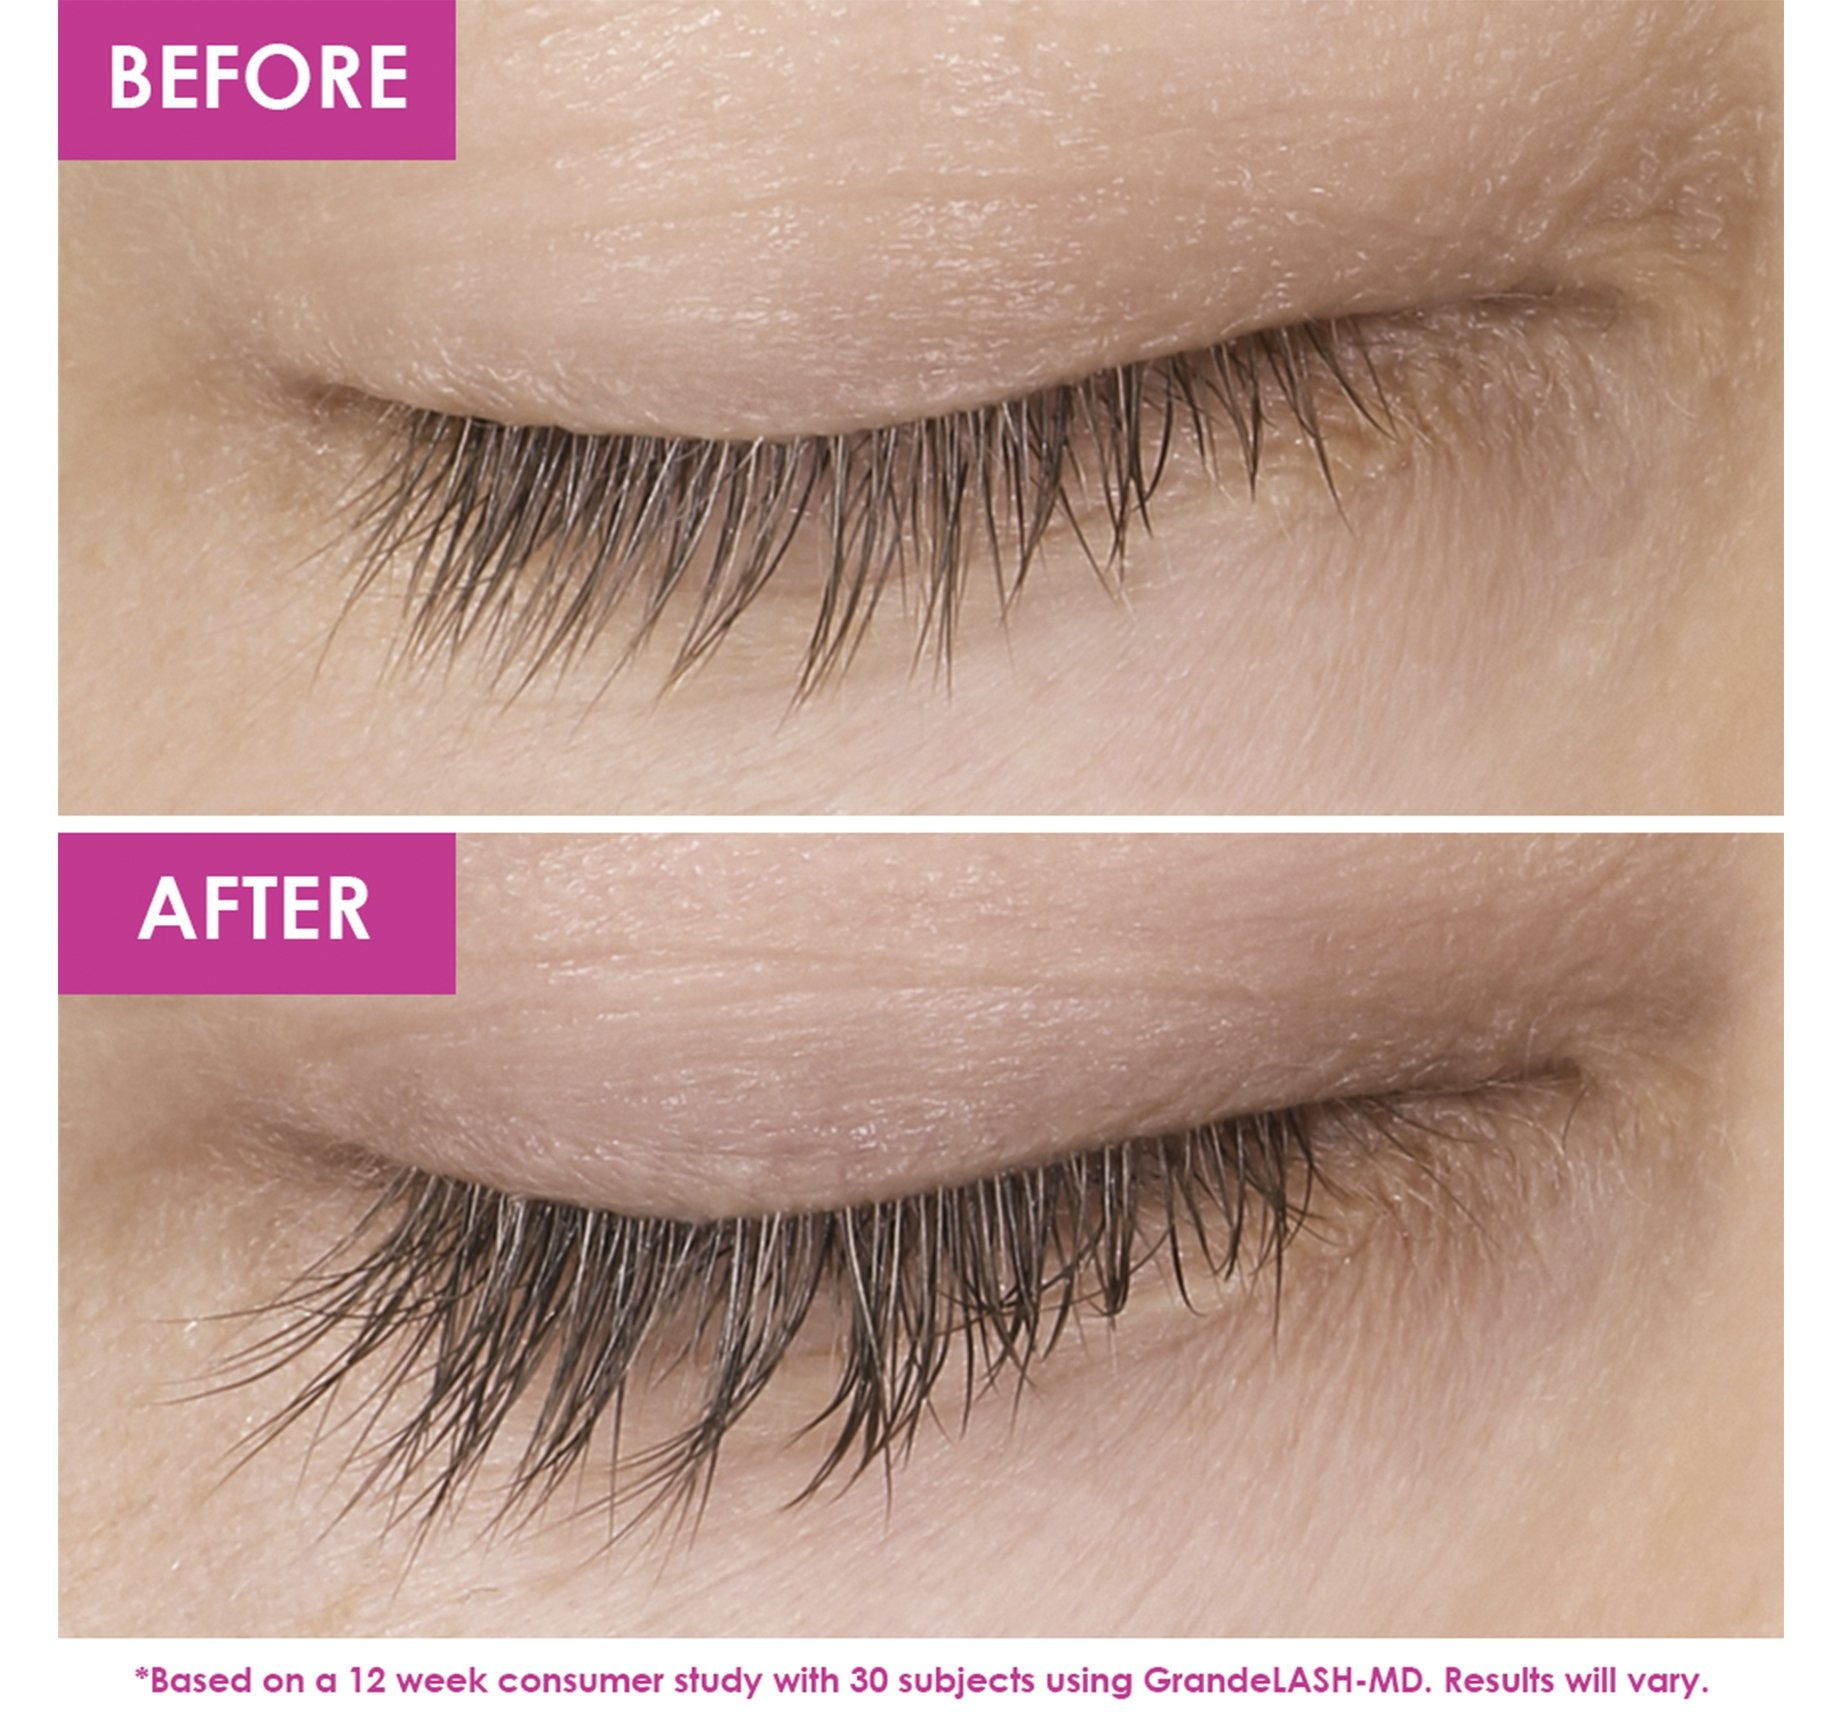 2-STEP LASH SYSTEM, view larger image